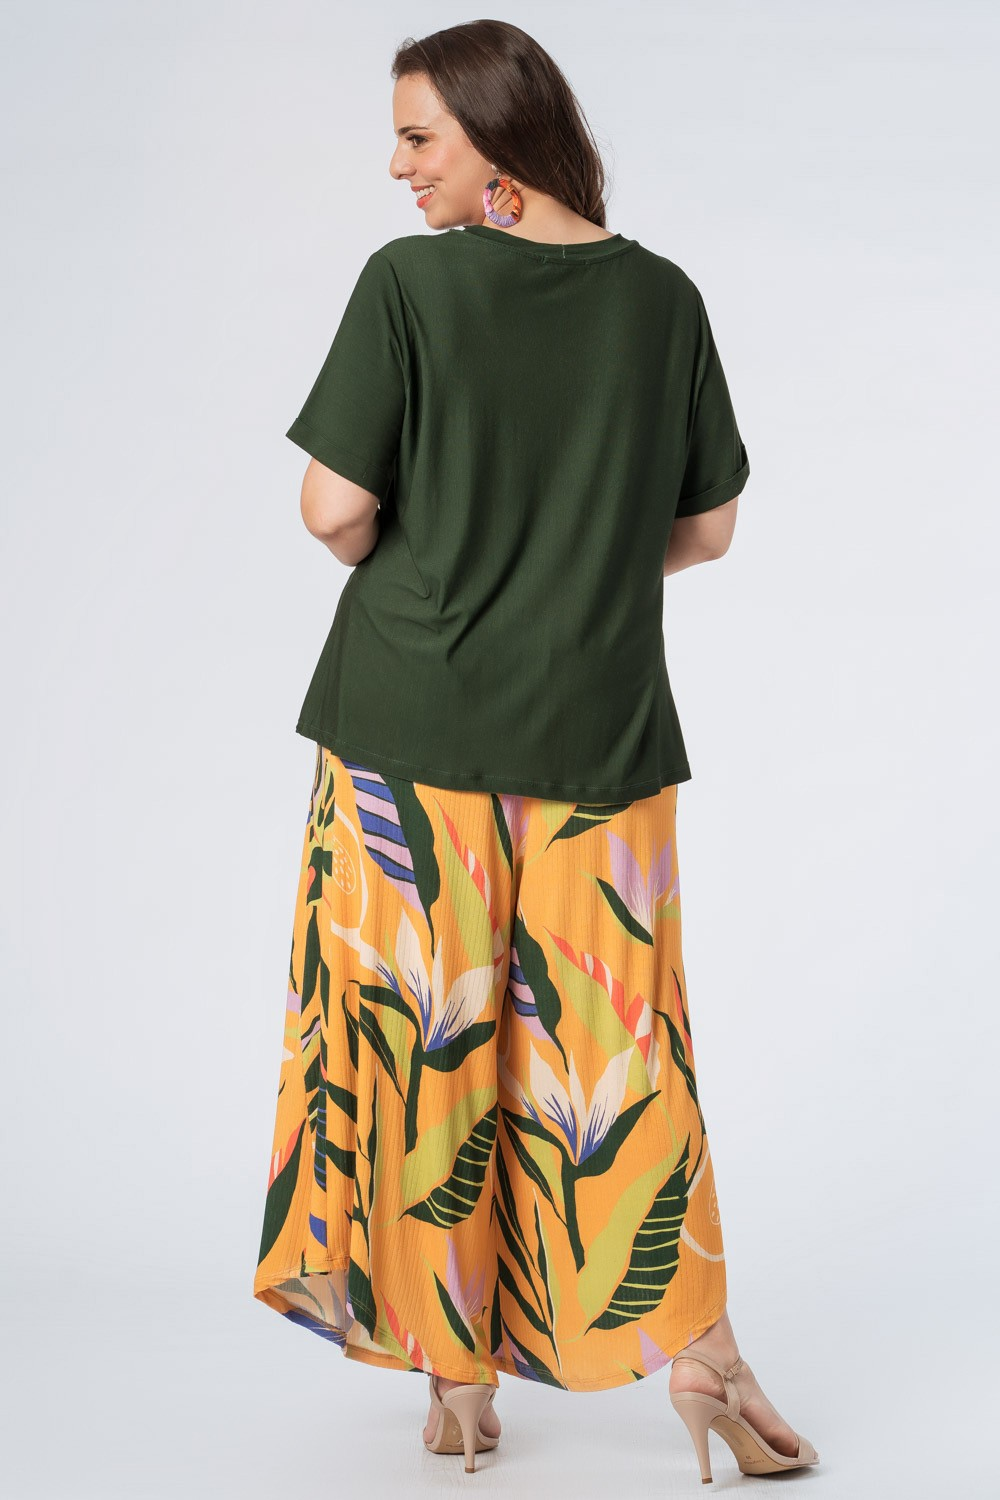 T-SHIRT ESTAMPADA ARARA PLUS SIZE VERDE